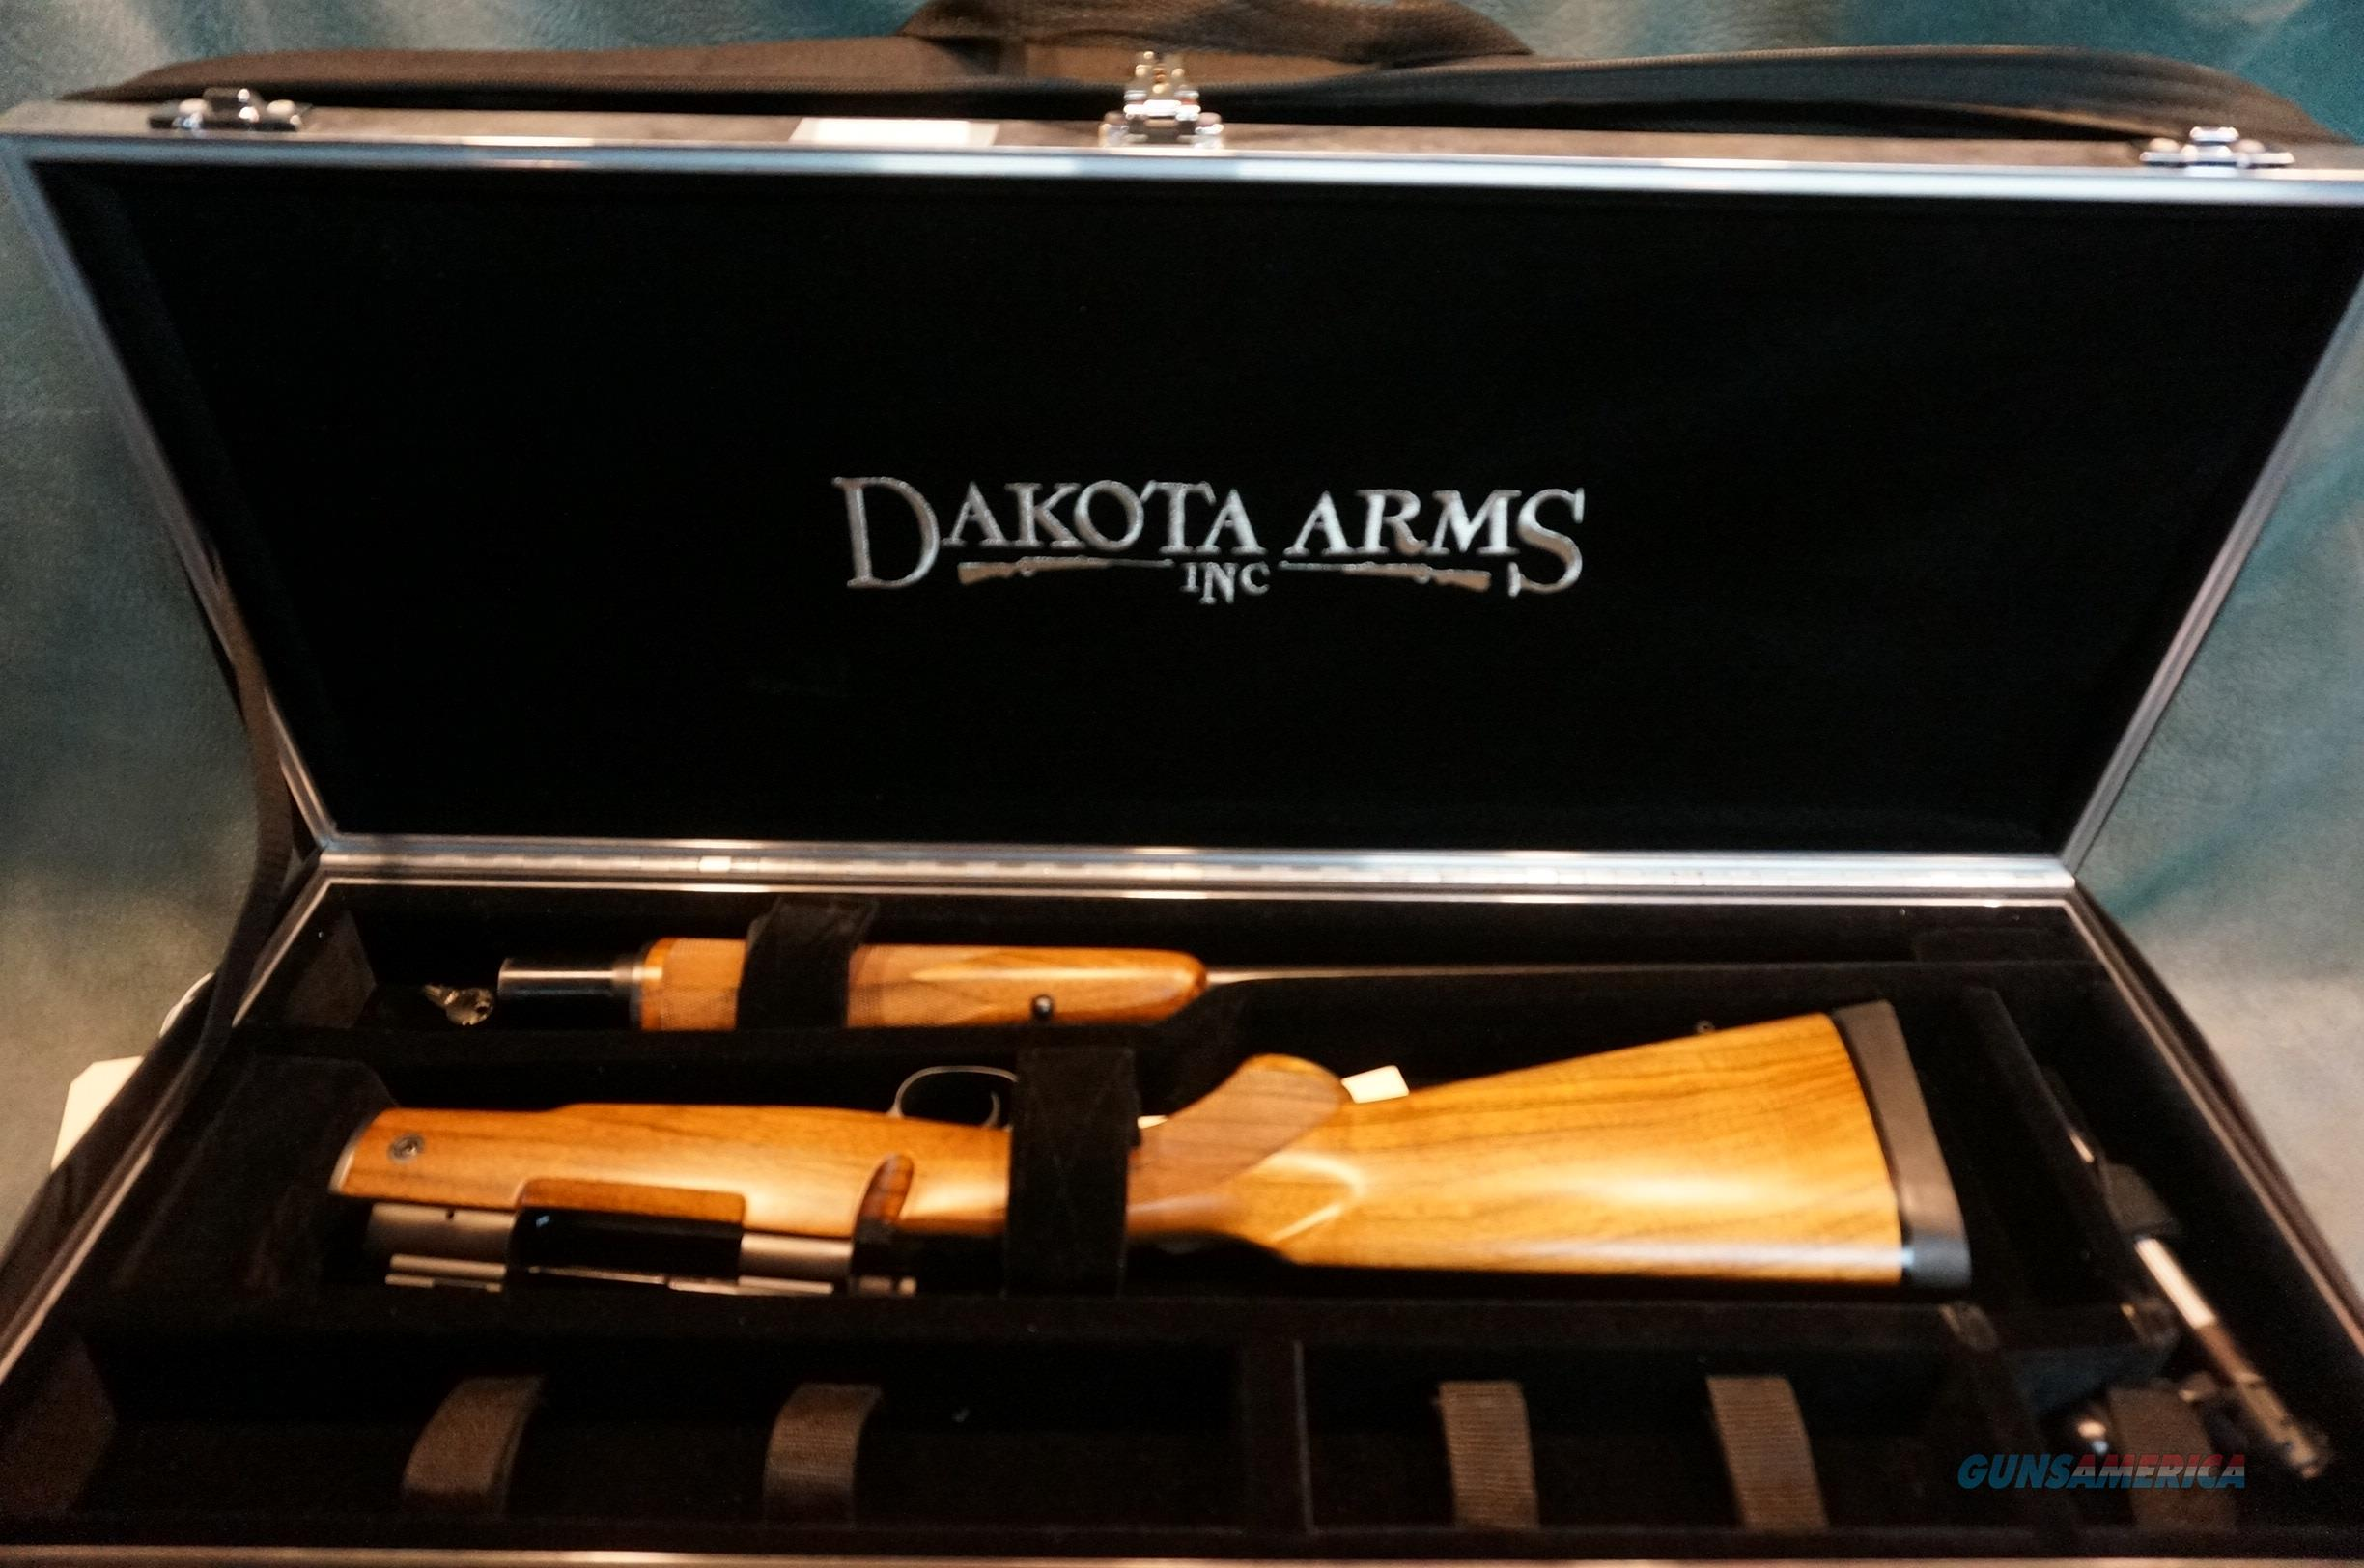 Dakota Arms Model 76 Traveler 7mmWbyMag takedown rifle  Guns > Rifles > Dakota Arms Rifles